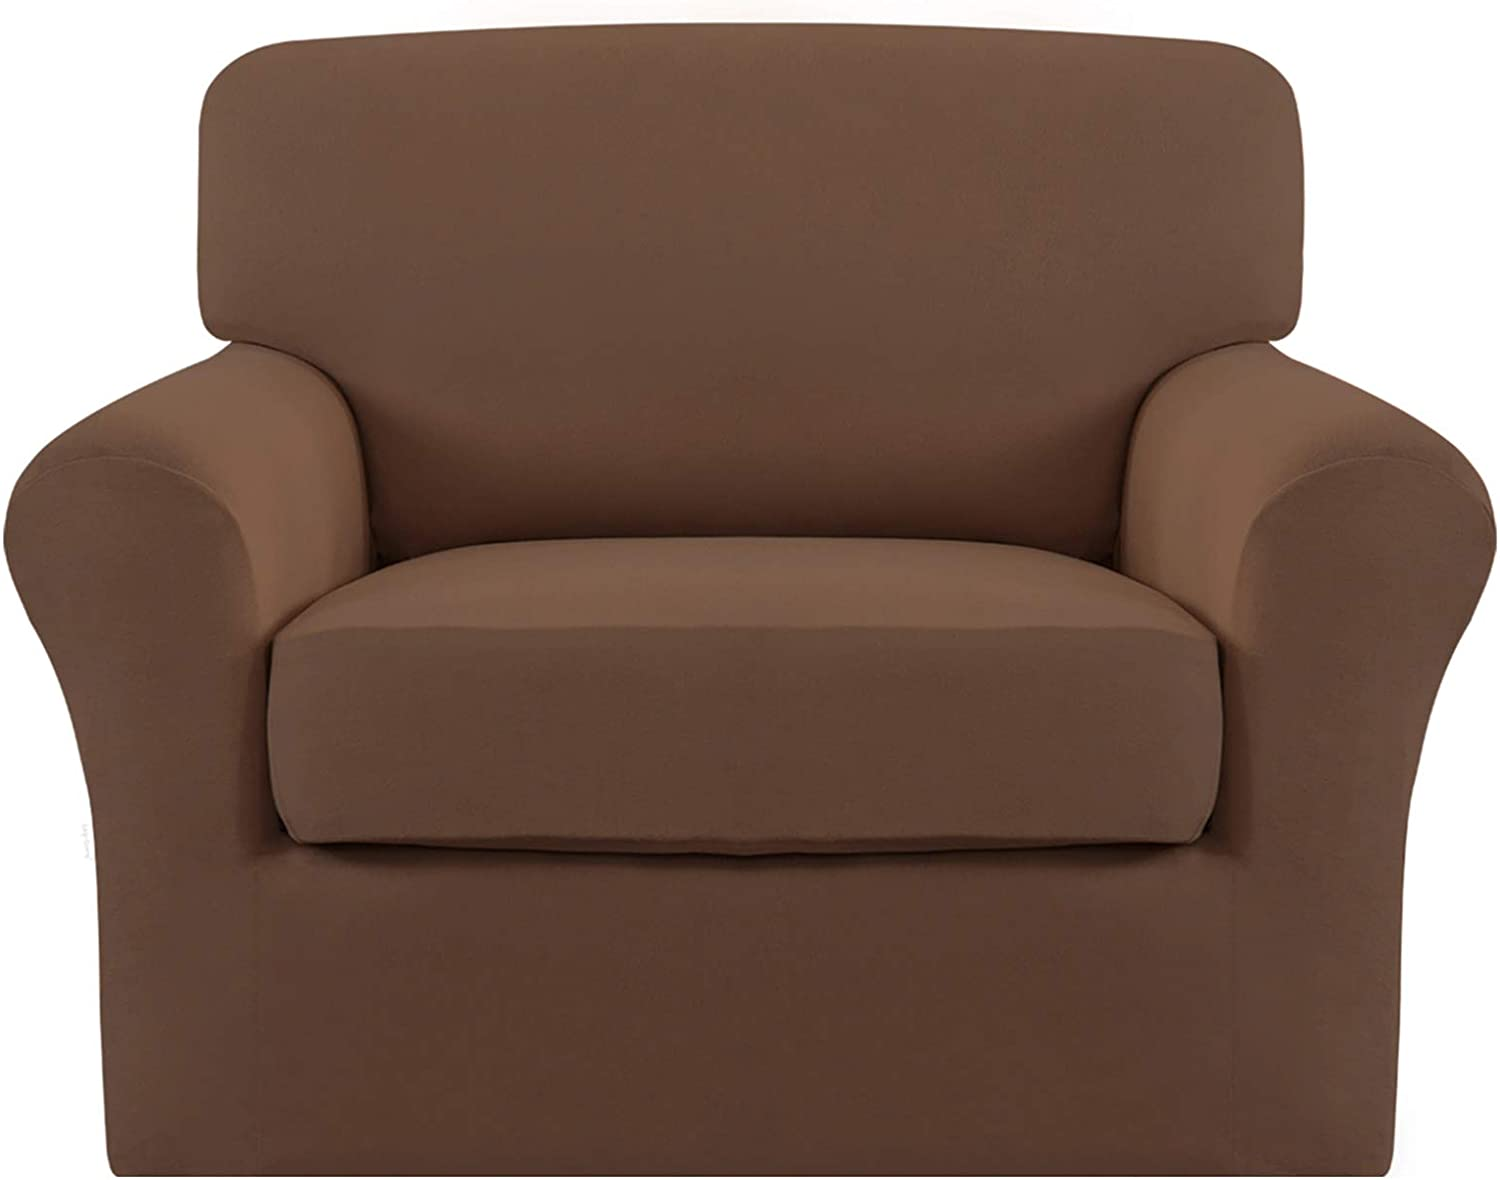 Easy-Going 2 Pieces Microfiber Stretch Couch Slipcover – Spandex Soft Fitted Sofa Couch Cover, Washable Furniture Protector with Elastic Bottom for Kids,Pet (Chair, Brown)